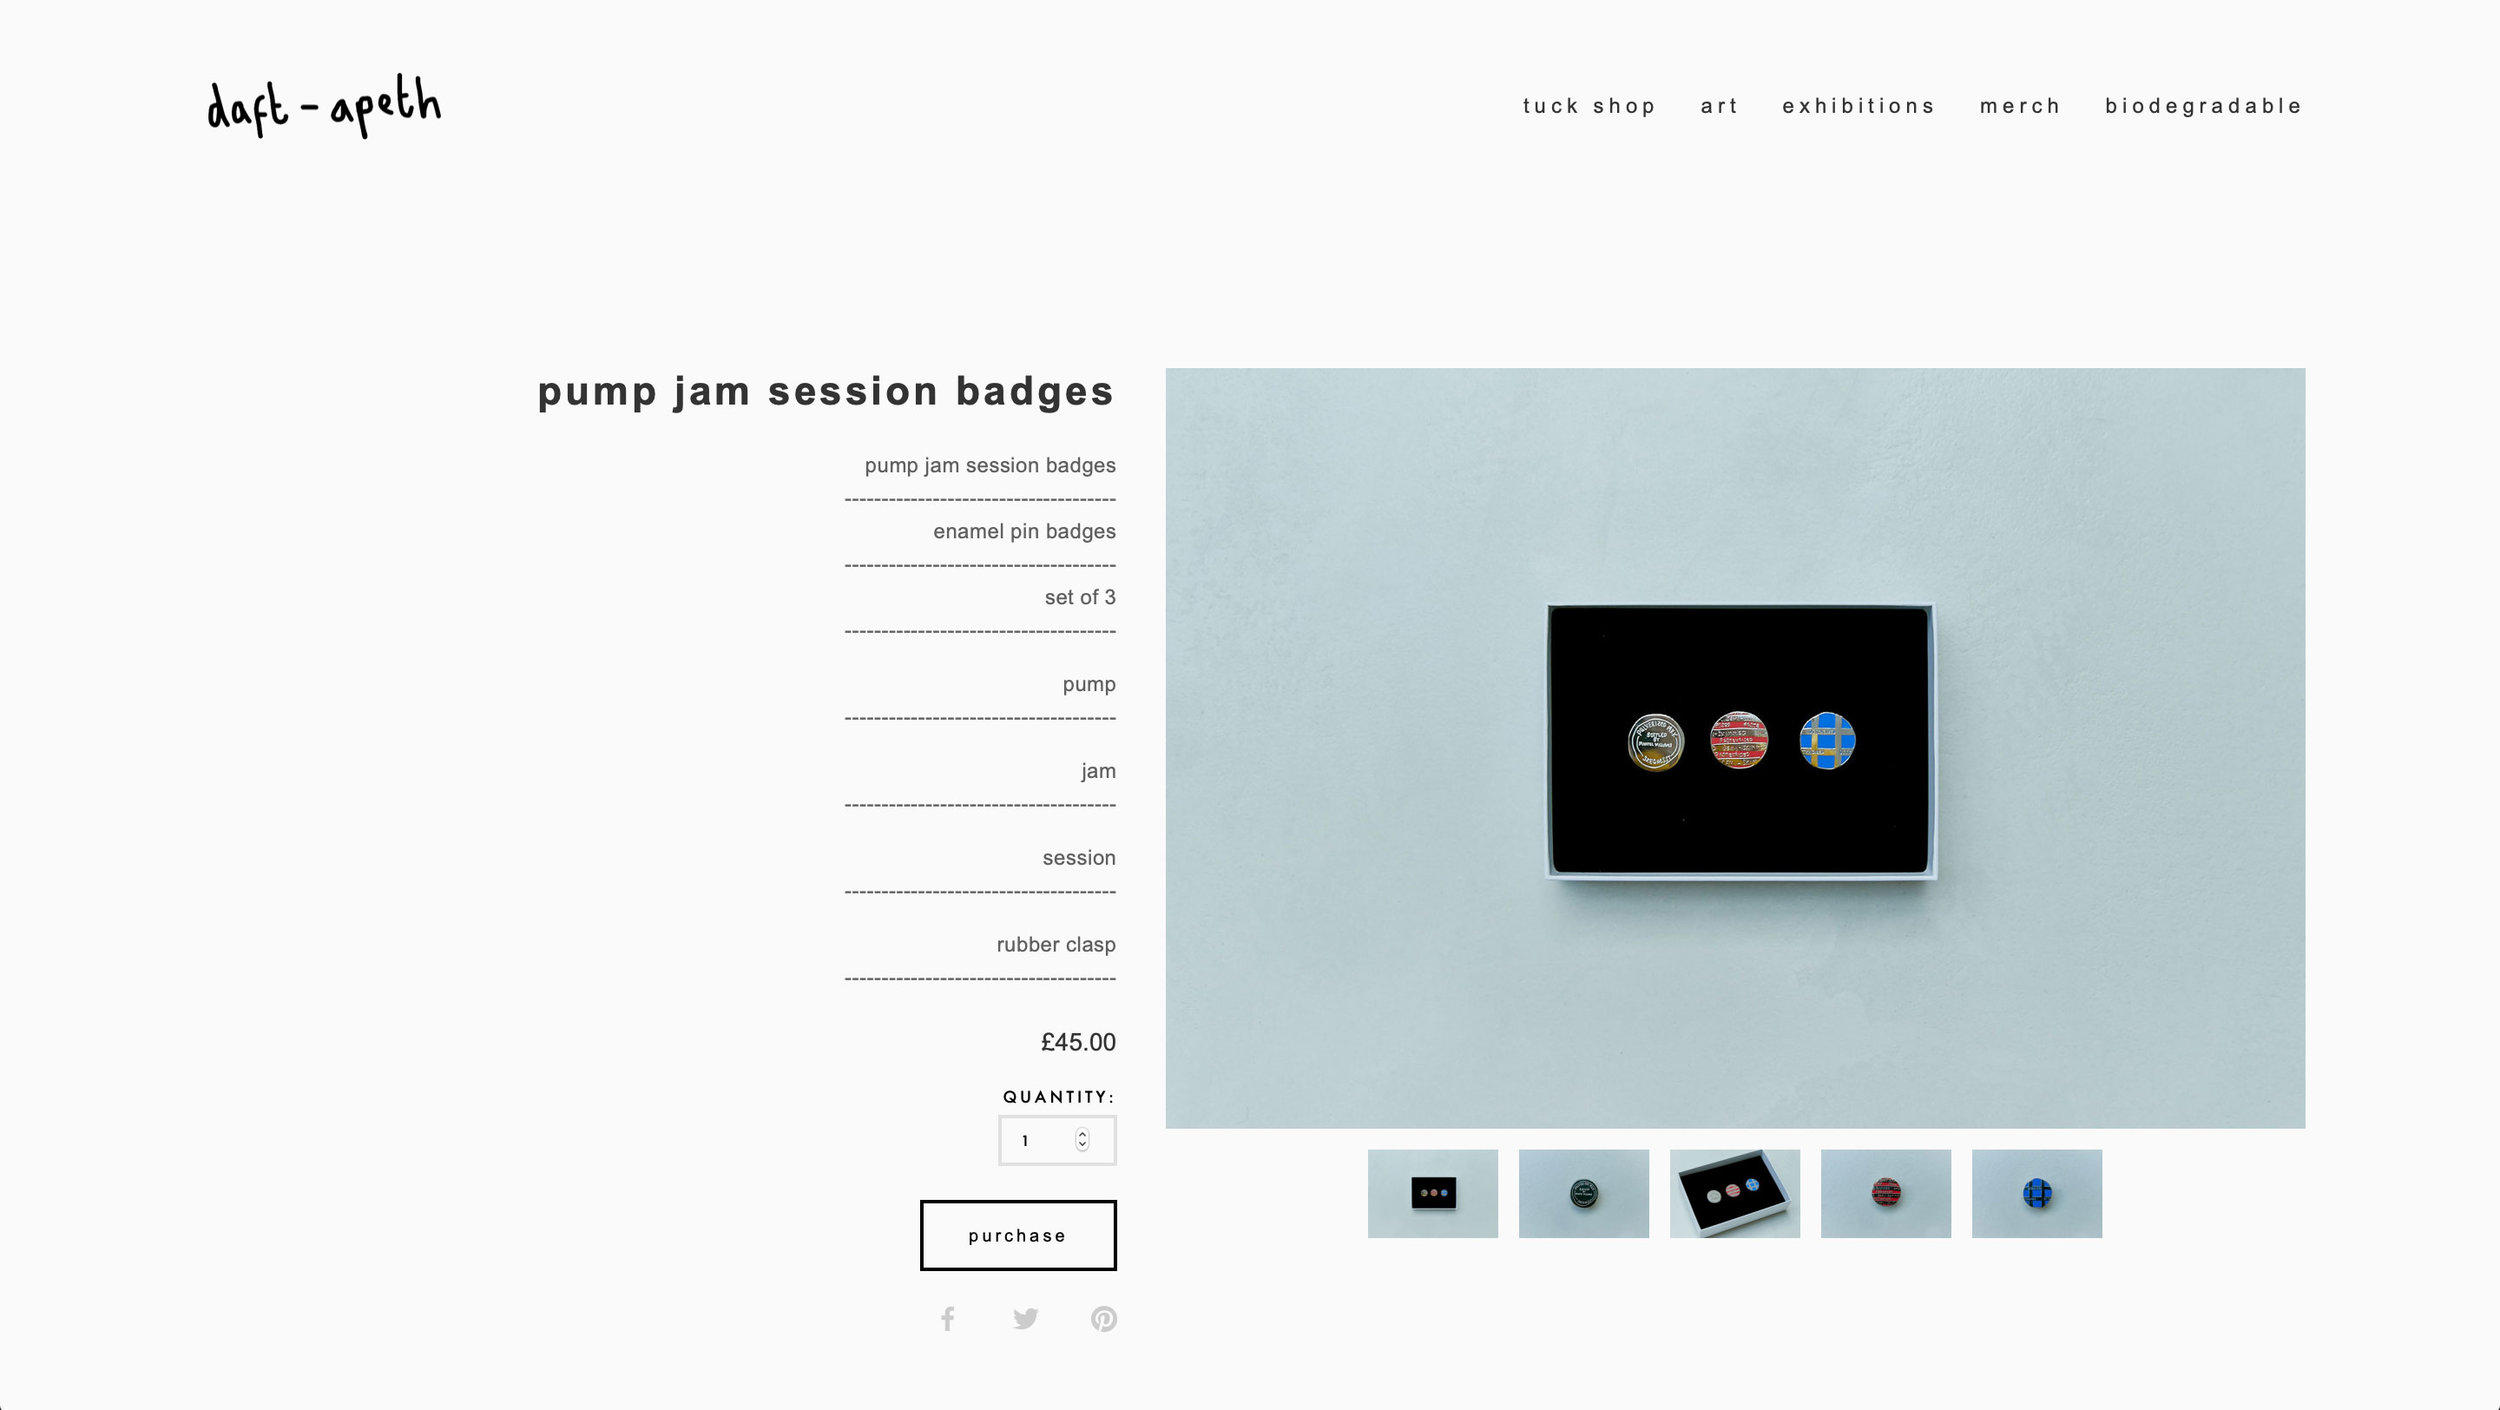 Product Page in the 'tuck shop'